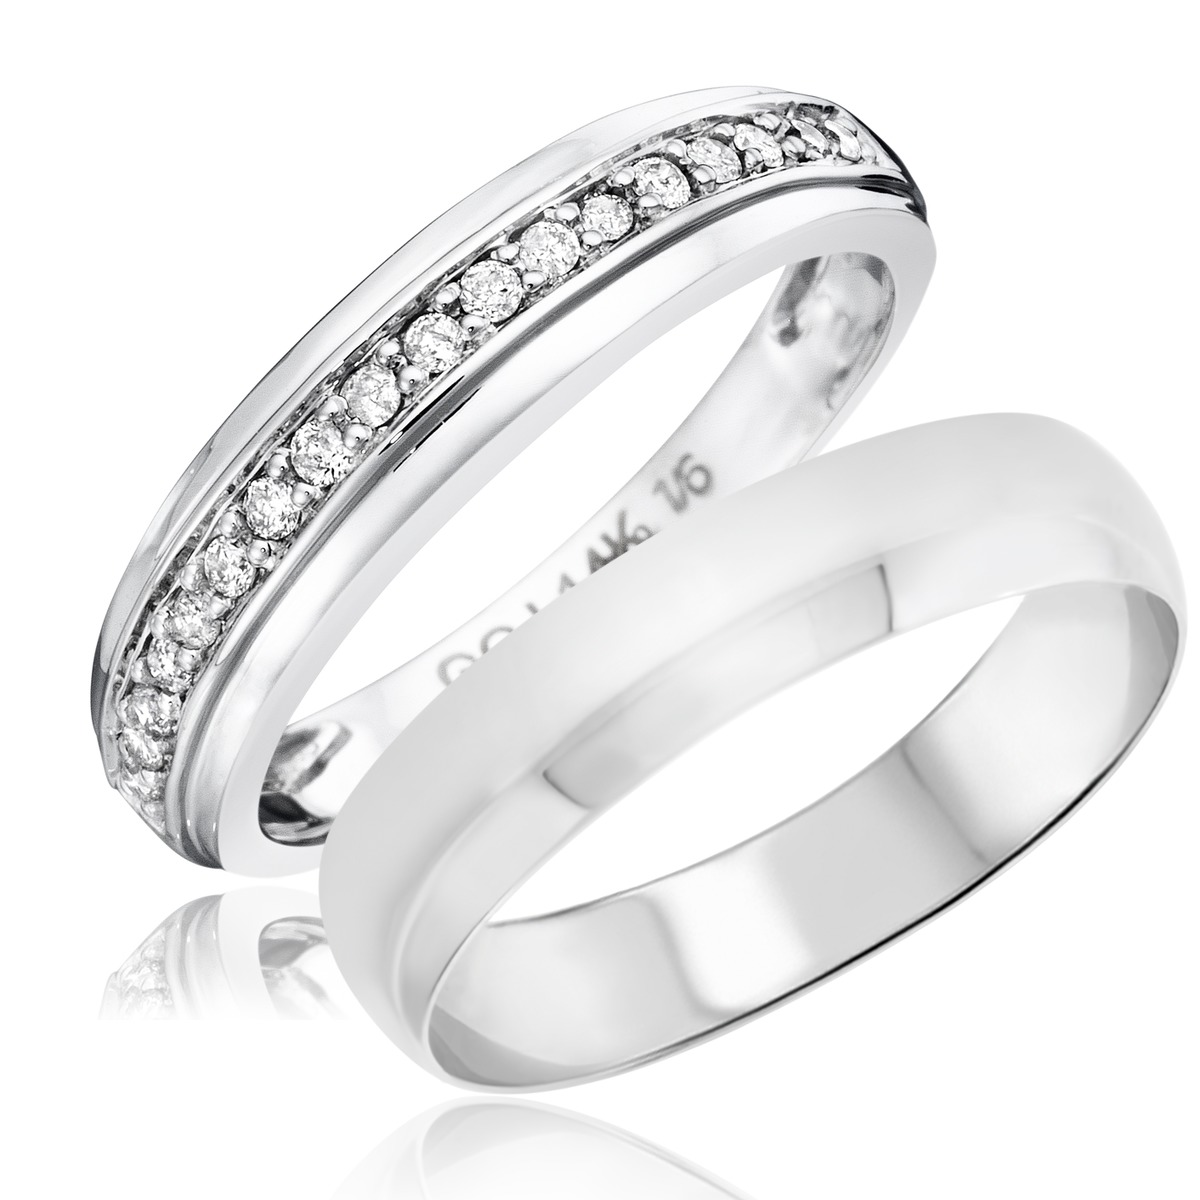 1/7 Carat T.W. Round Cut Diamond His and Hers Wedding Band Set 14K White Gold